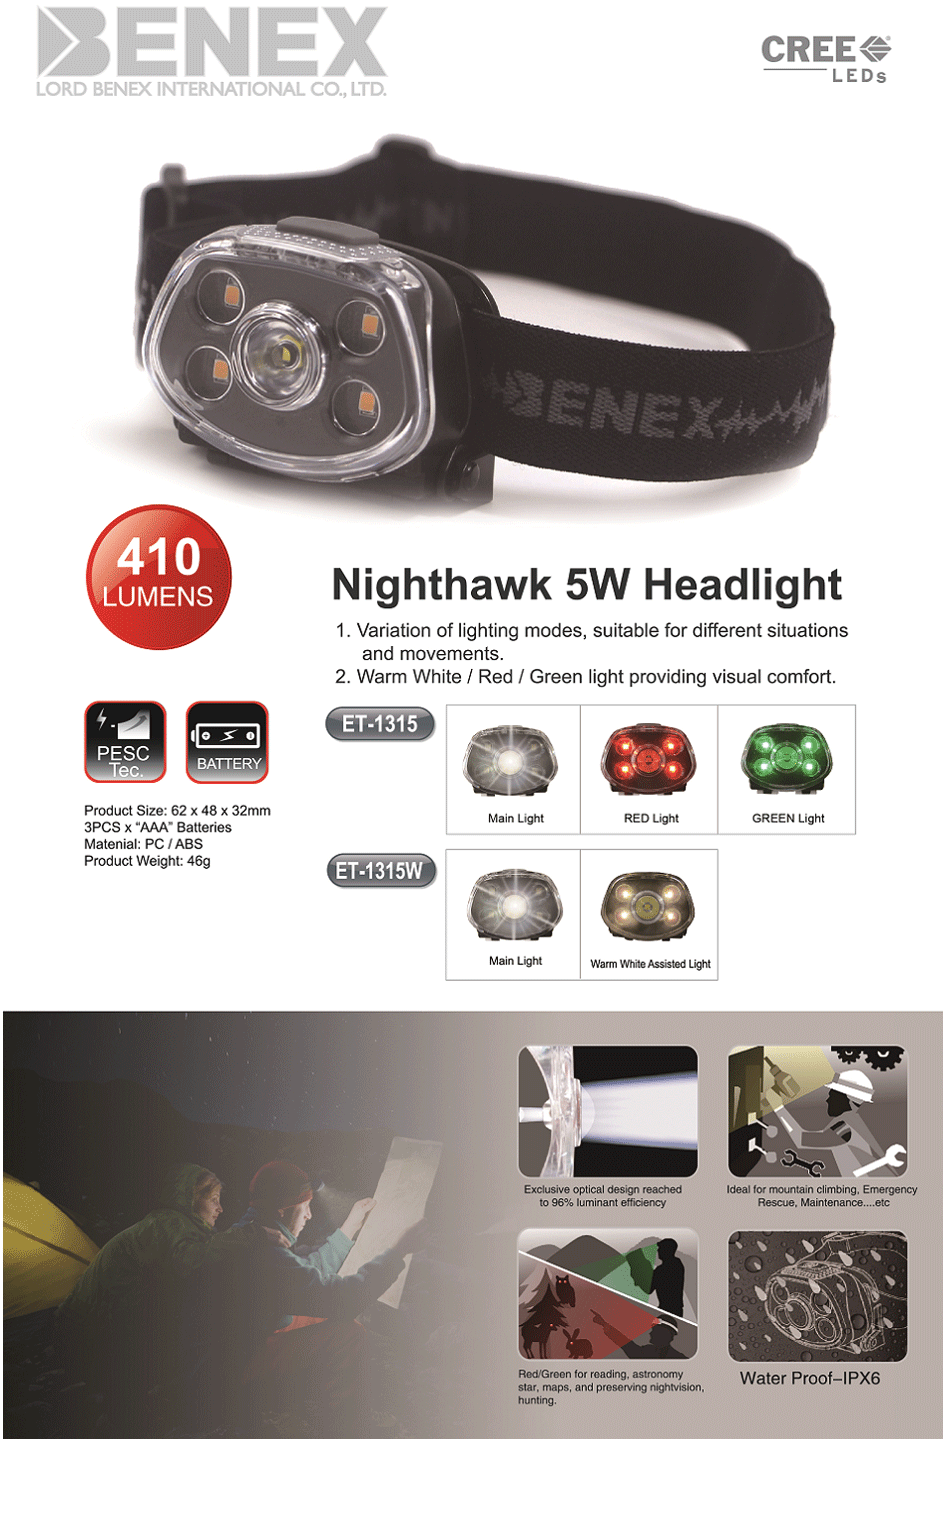 ET-1315 / 1315-W Nighthawk 5W 410LM LED Headlight